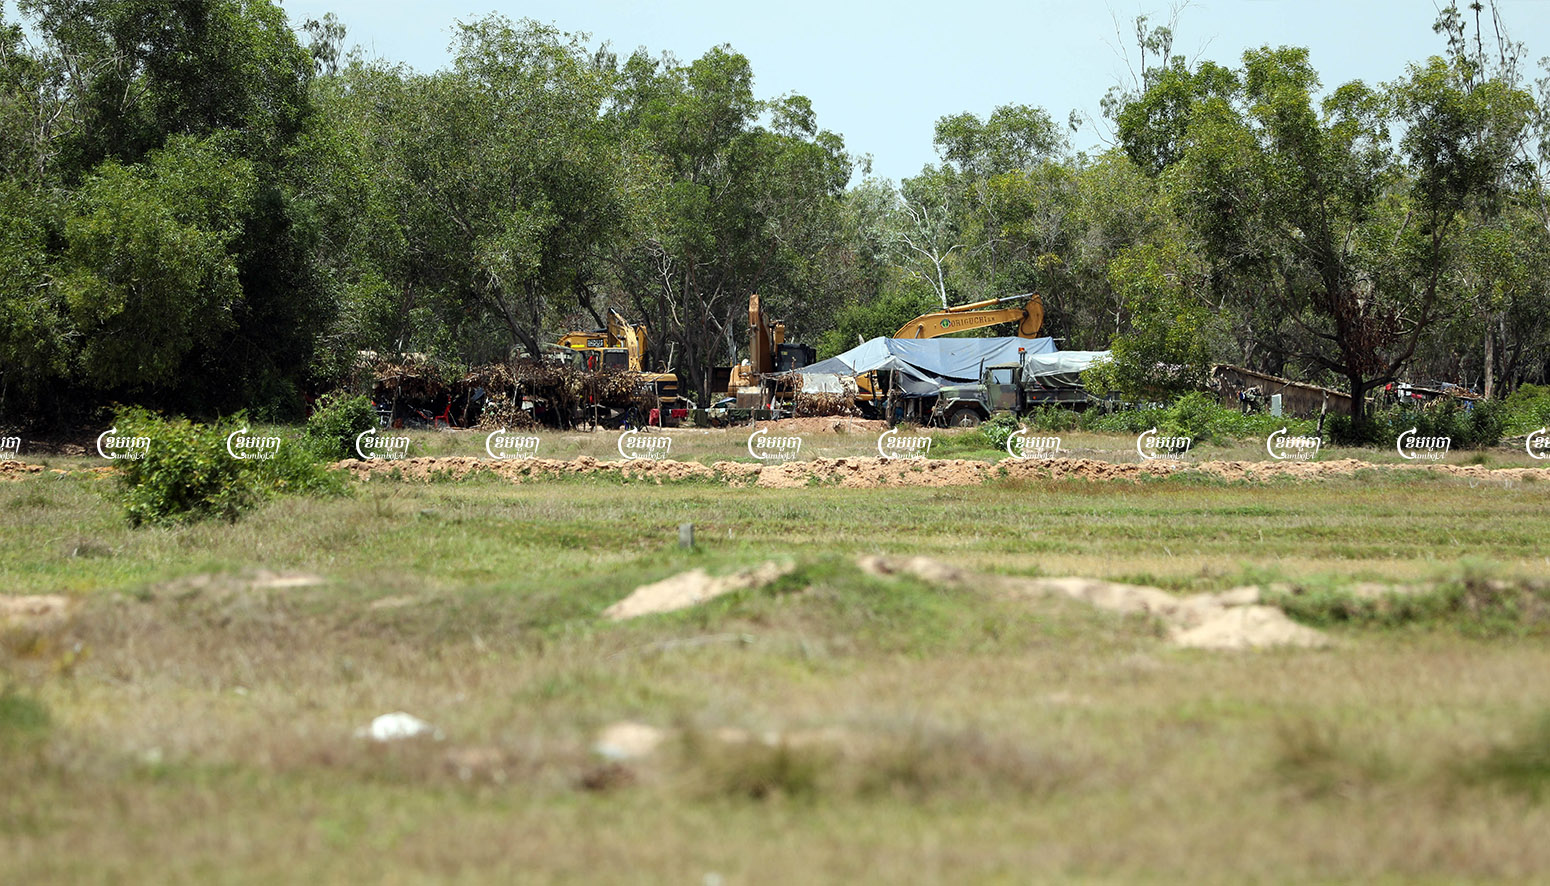 Soldiers set up a tent along with a number of excavators and bulldozers in a disputed land site in Kandal province's Ang Snuol district, June 4, 2021.CamboJA/ Pring Samrang